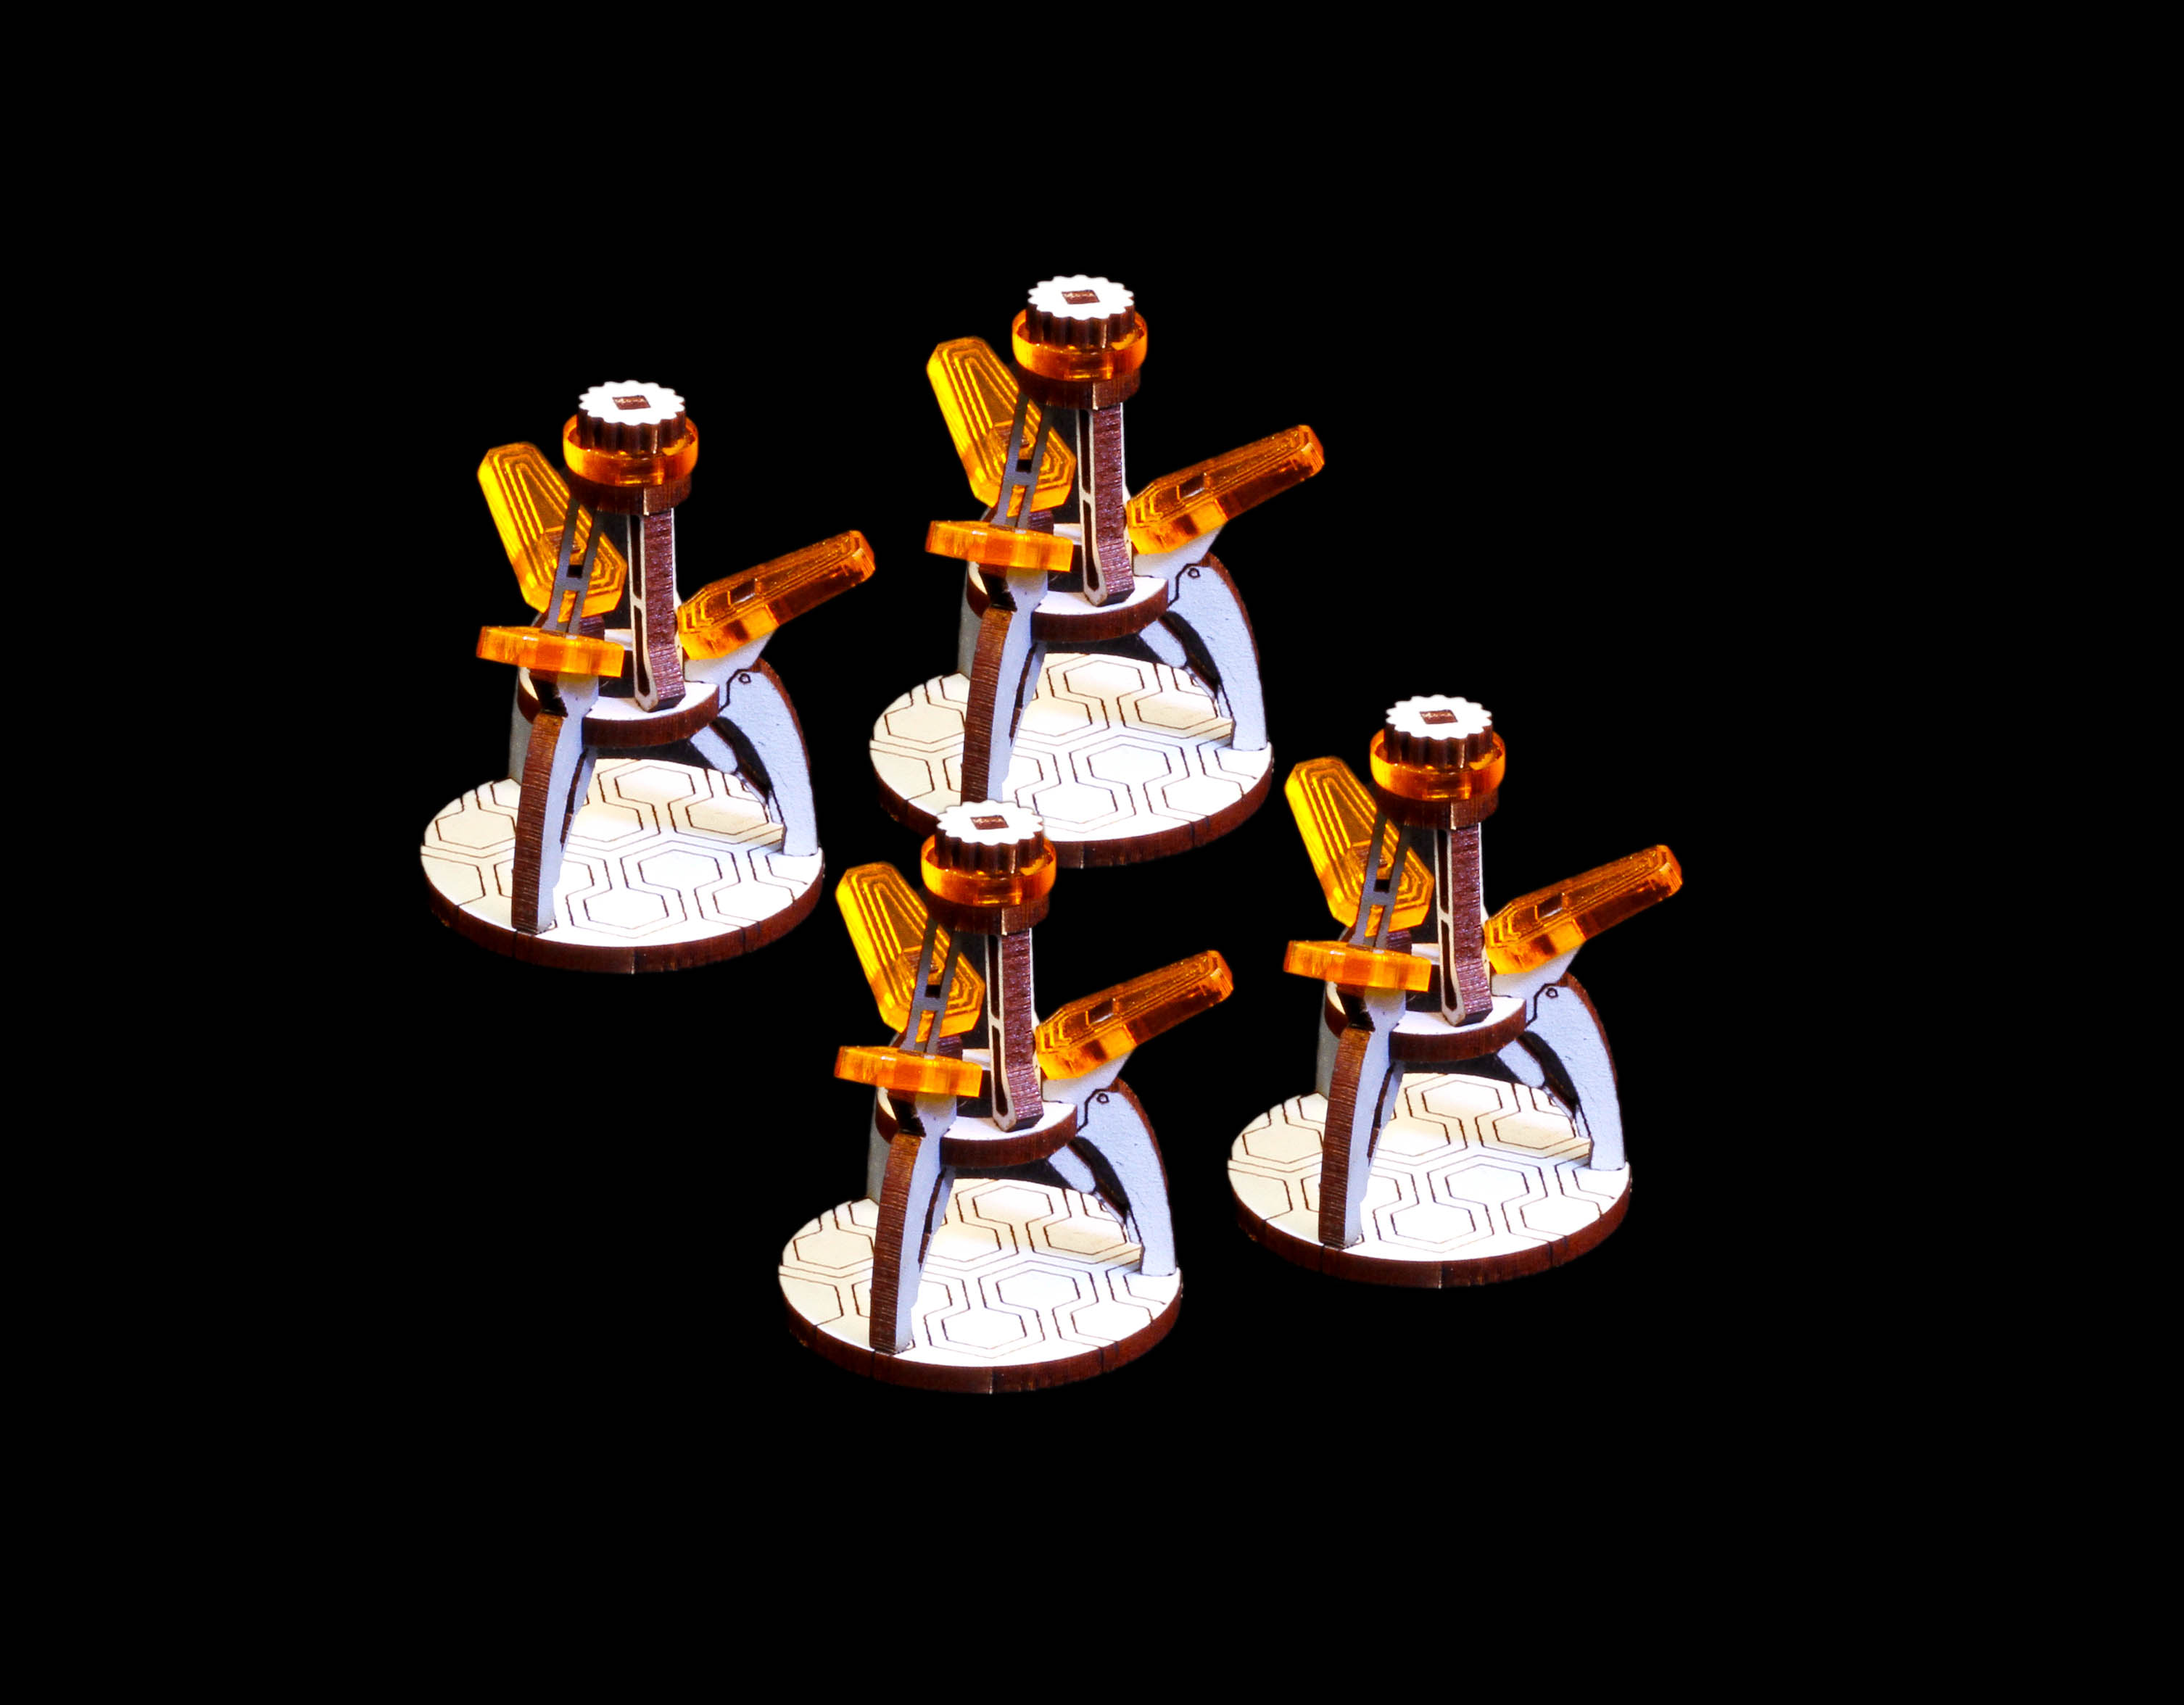 beacon objectives for infinity the game